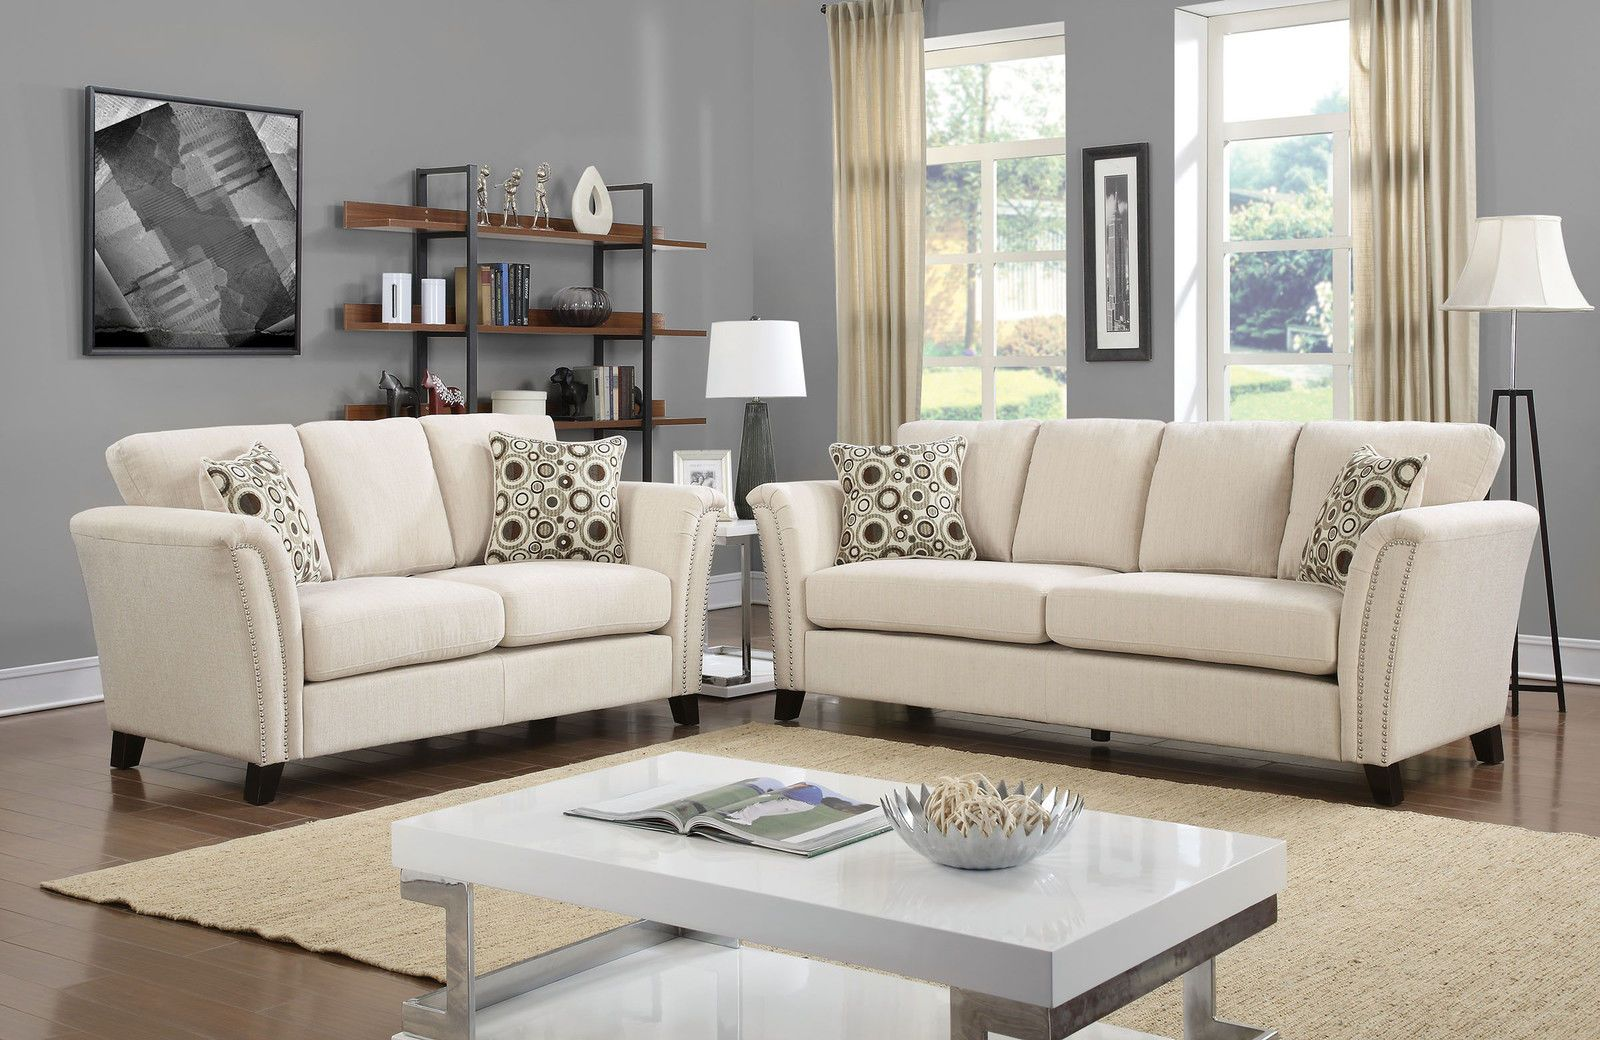 $ 1499.99 | New Ivory Fabric Contemporary Style Living ...